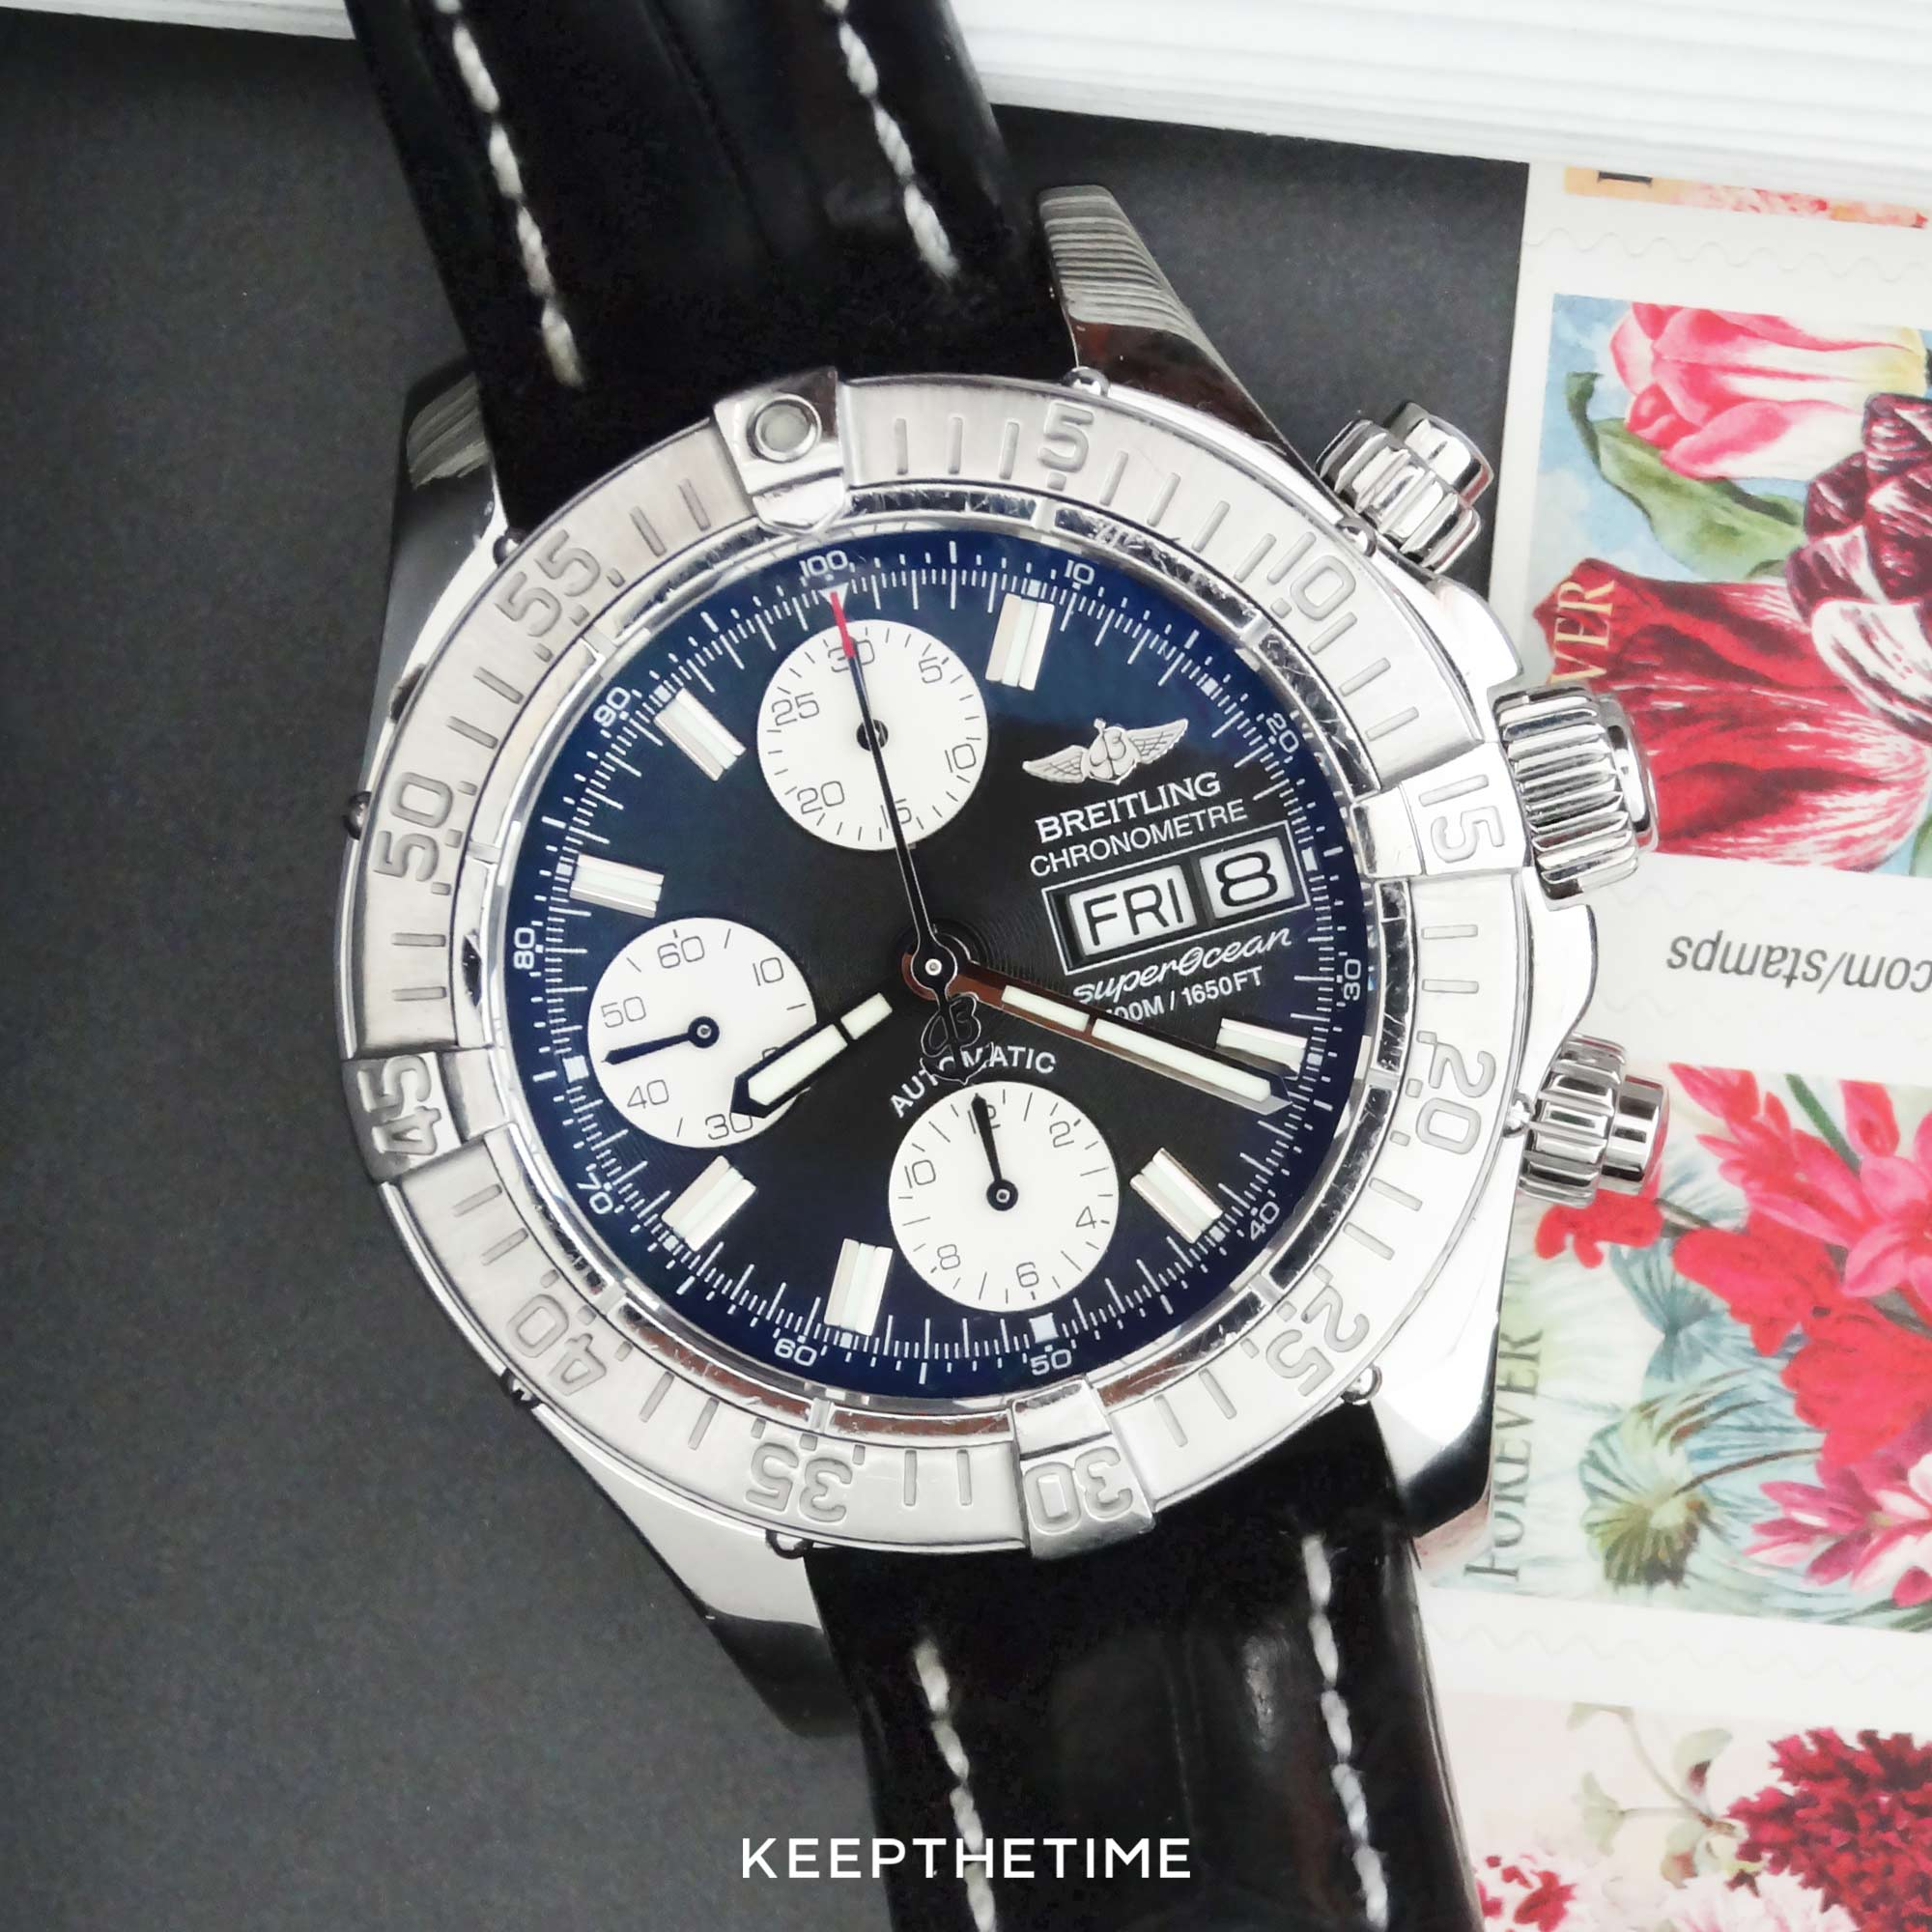 watches pinterest kienzle watch s men xl poseidon black chrono pin watchs